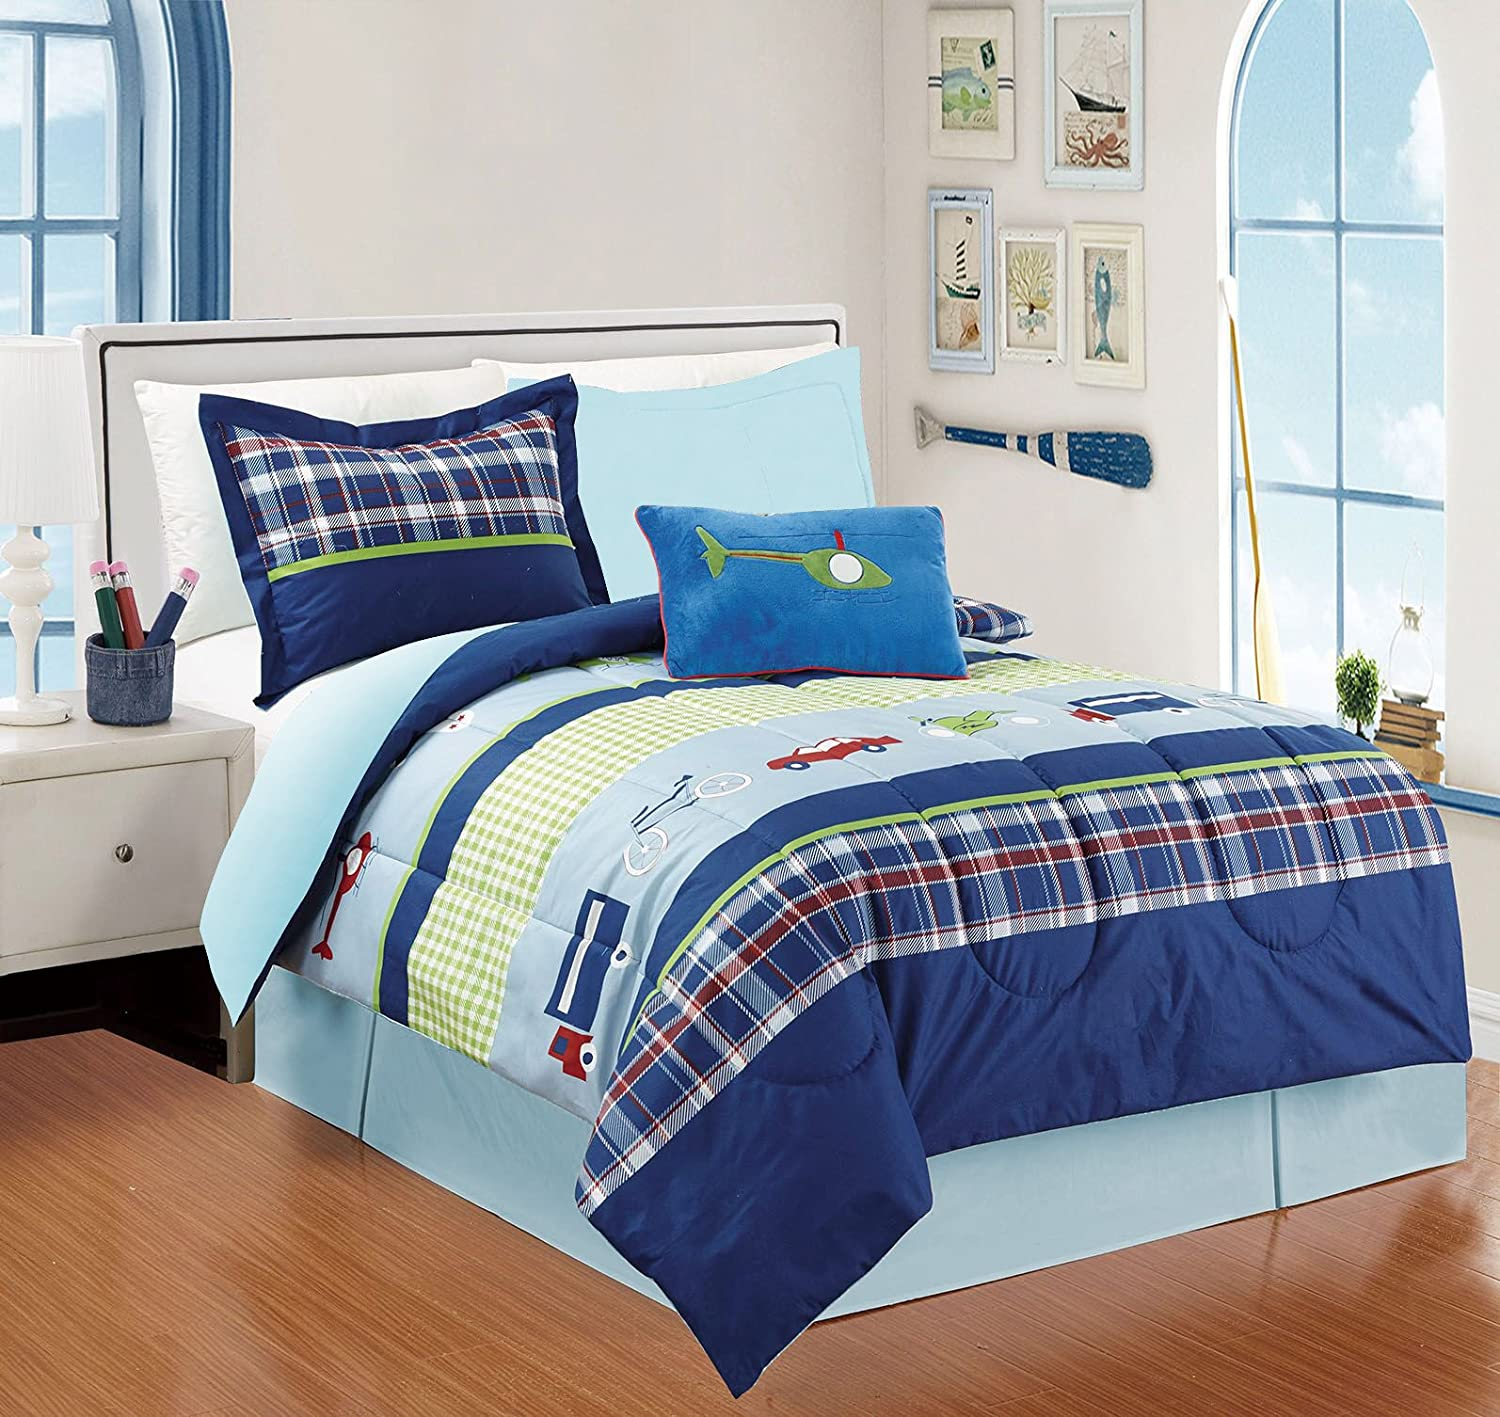 All American Collection 4 Piece Twin Size Auto's Comforter Set with Bed-skirt Comforter Set, Navy/ L.Blue